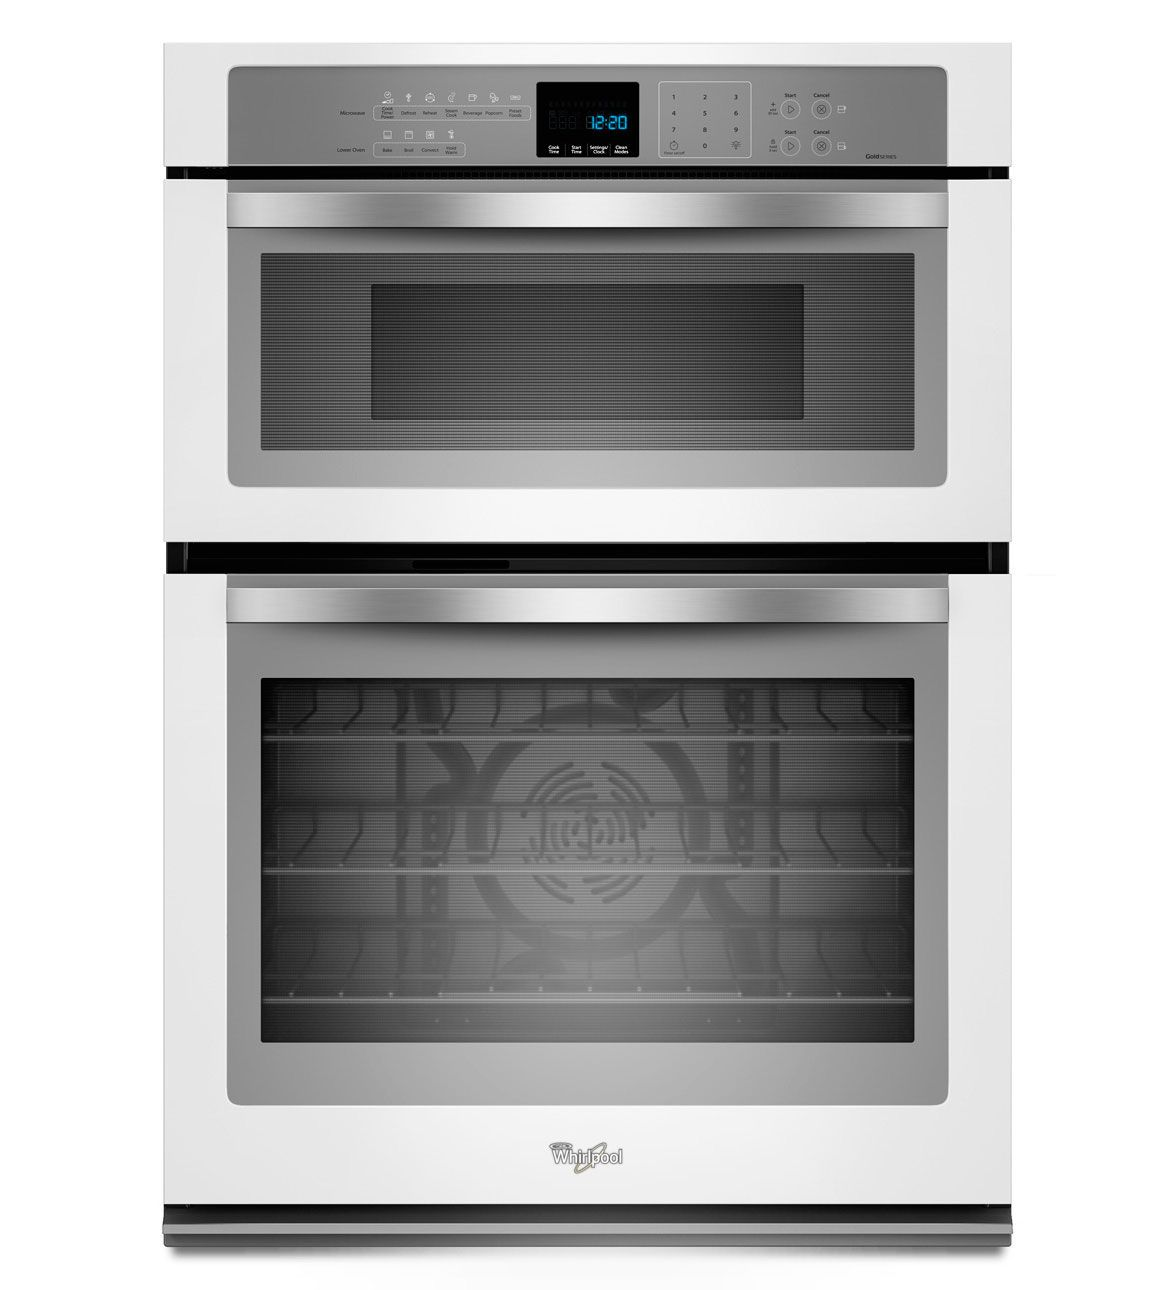 Whirlpool 5 0 Cu Ft Combination Microwave Wall Oven With Convection Cooking In White Ice